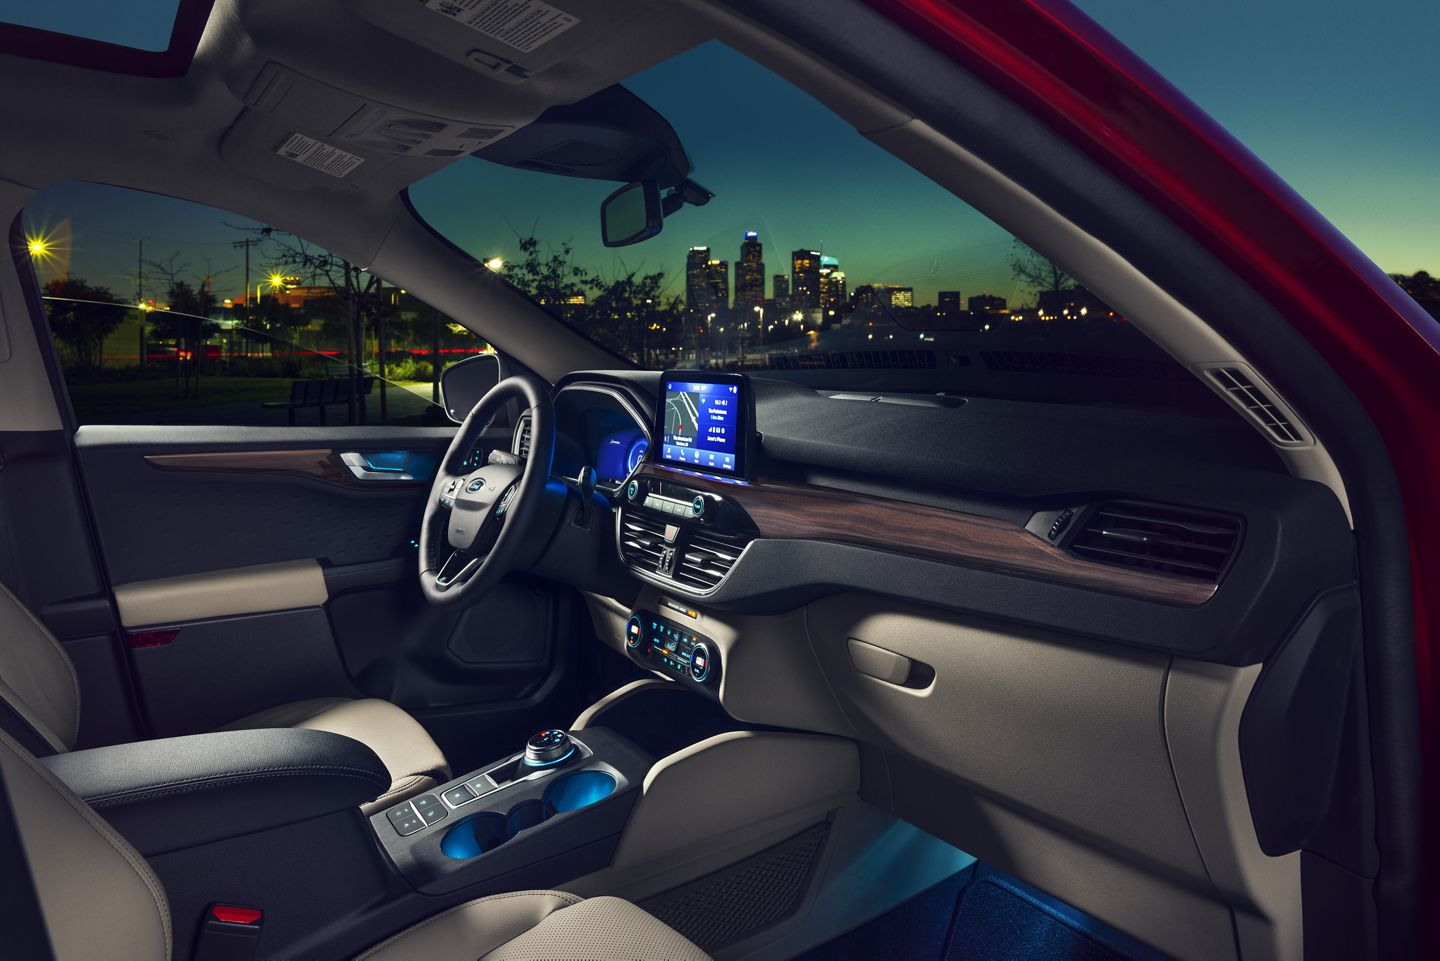 Interior of the 2020 Escape